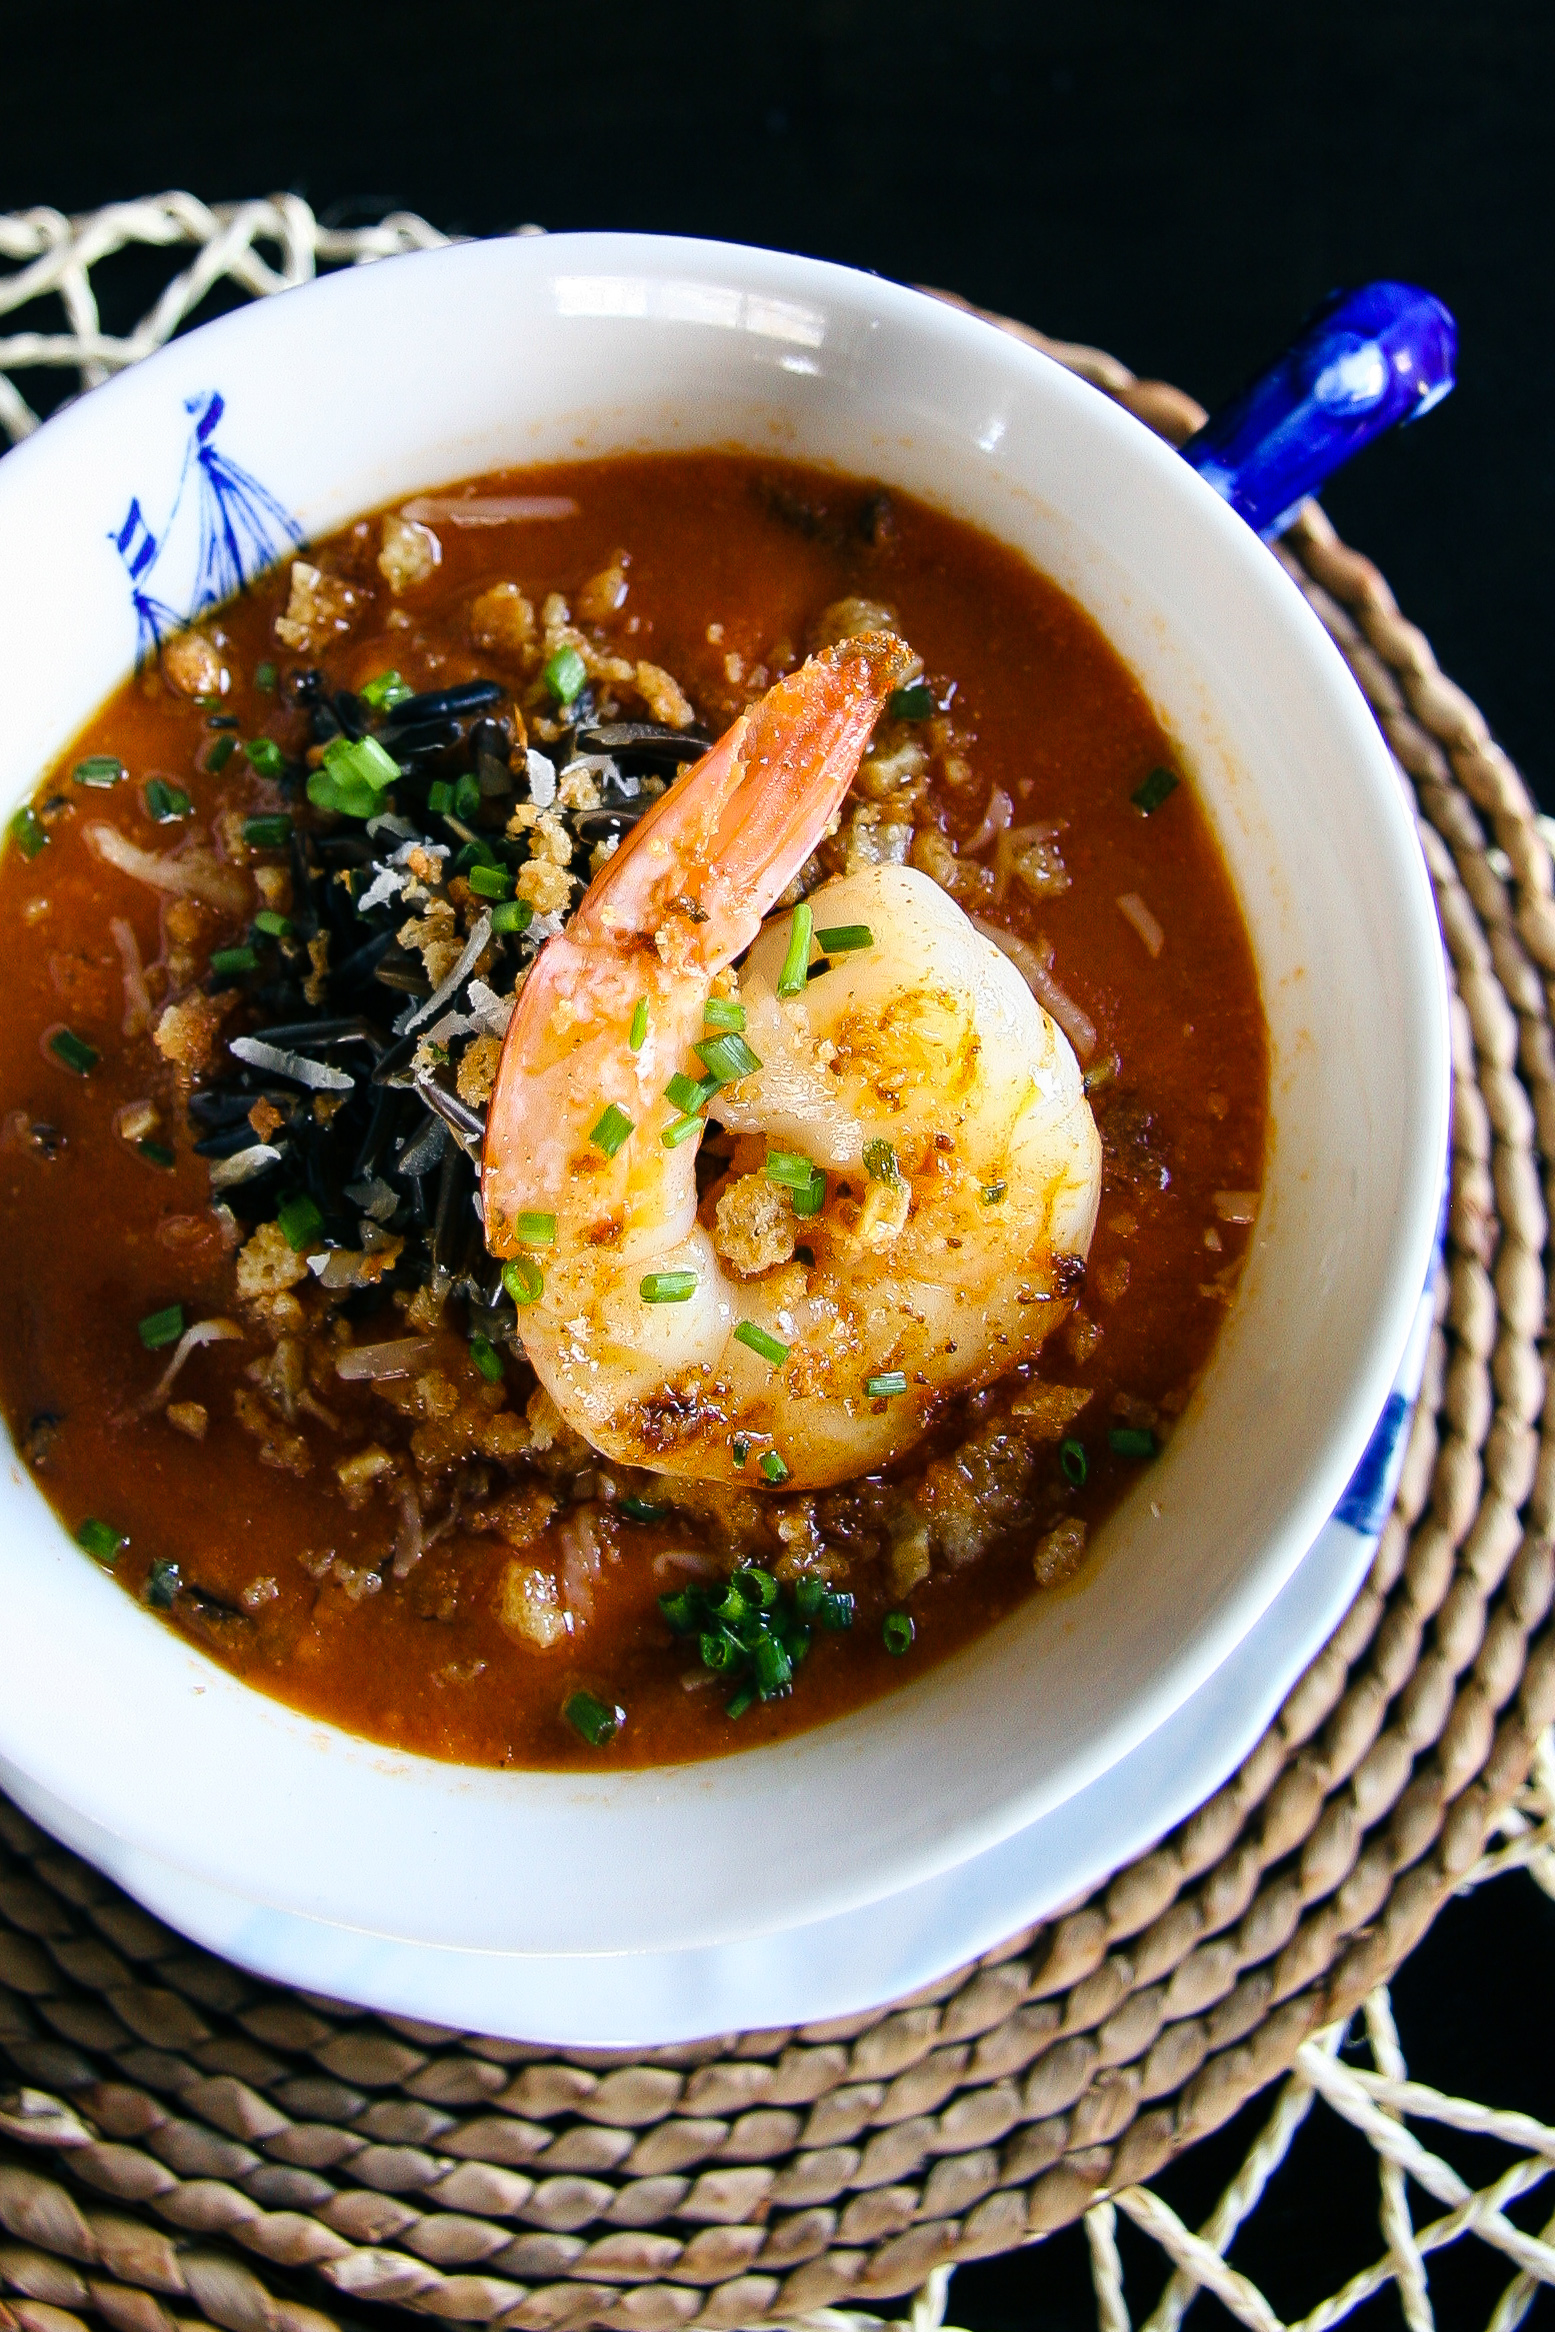 Roasted Tomato & Wild Rice Soup with Garlic Shrimp and Buttery Bread Crumbs | I Will Not Eat Oysters